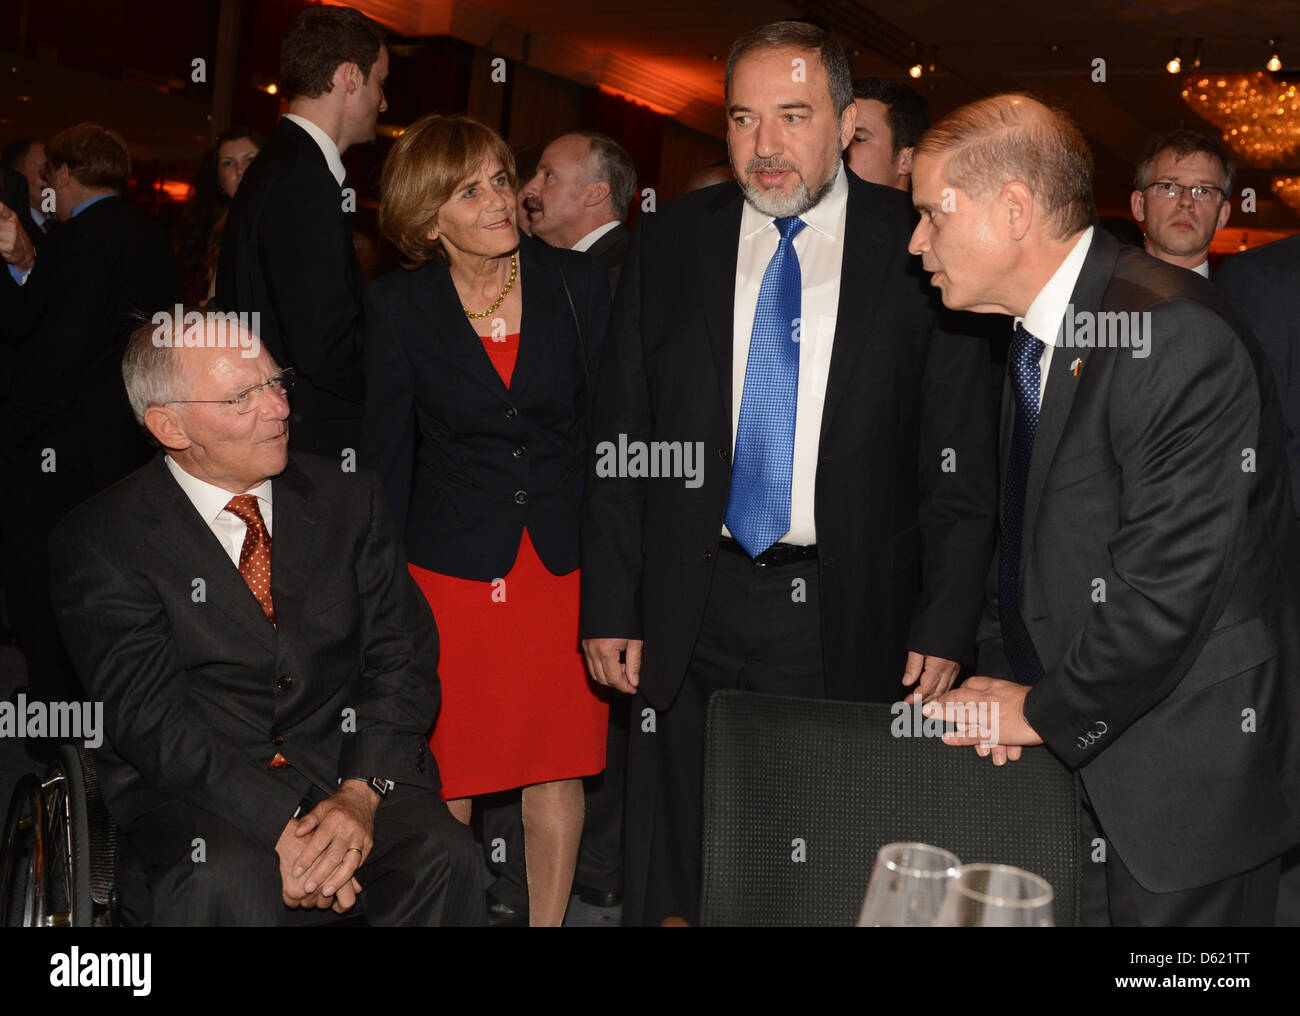 wife finance minister stock photos wife finance minister stock i ambassador yakov hadas handelsman r l i foreign minister avigdor lieberman and